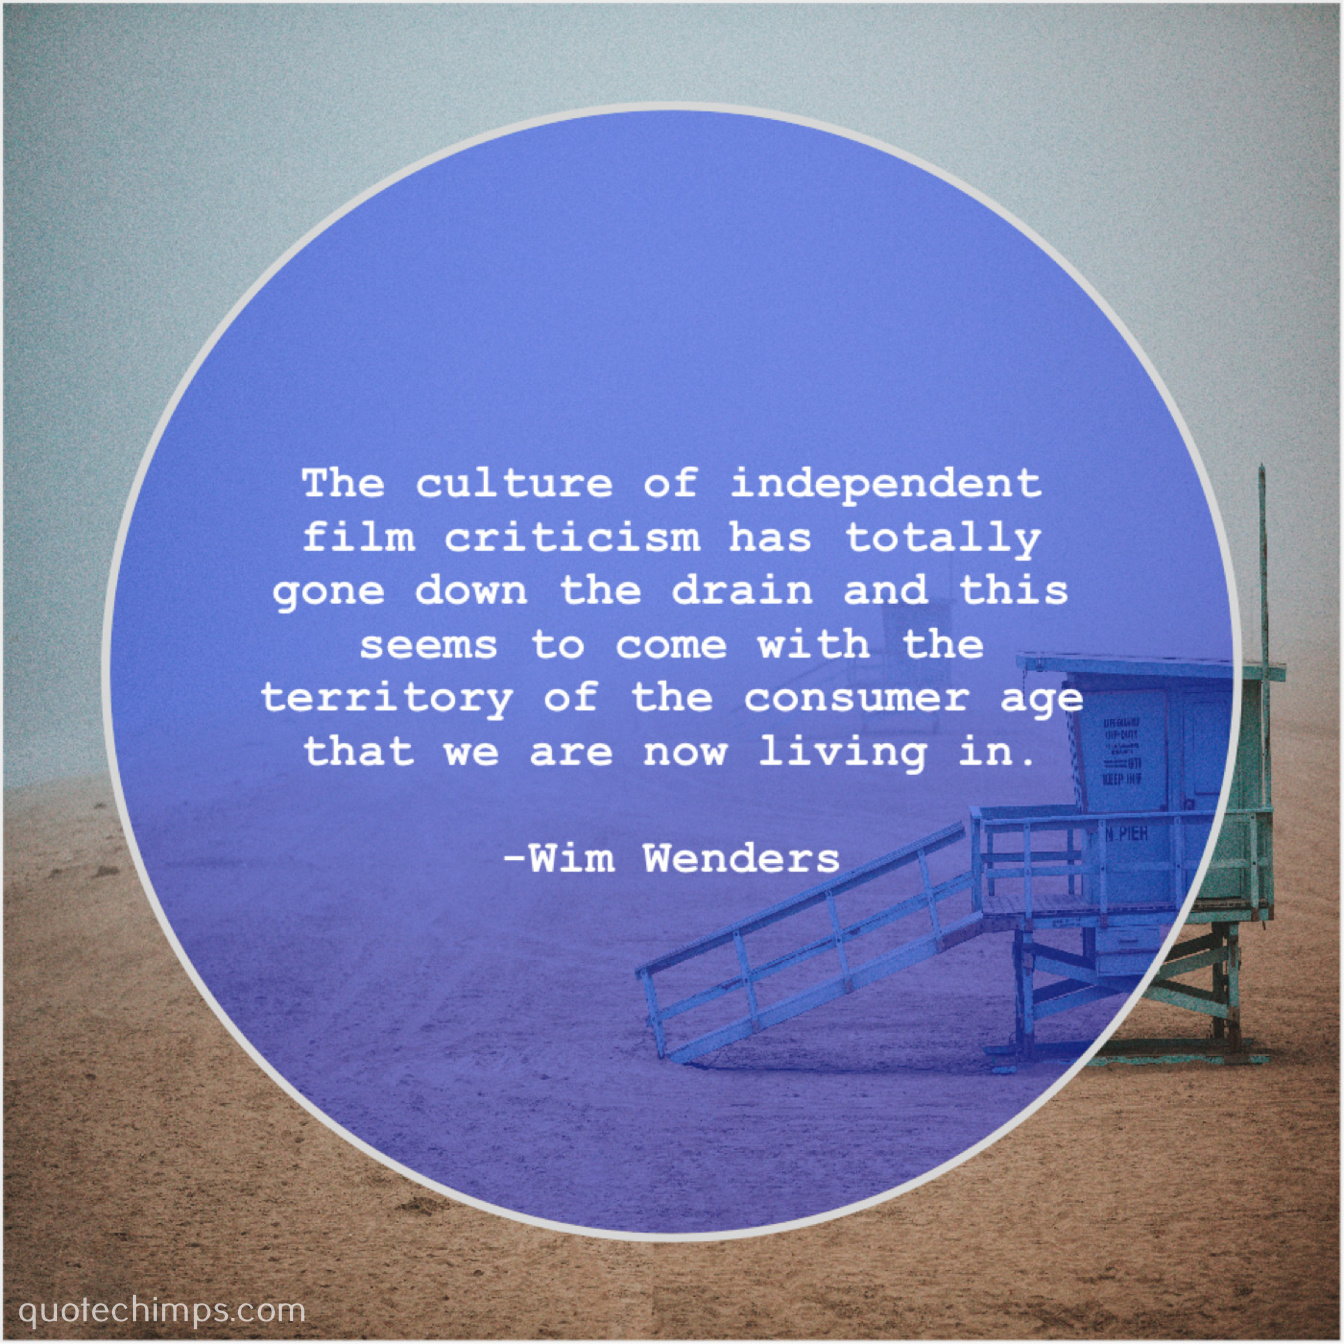 Wim Wenders The Culture Of Independent Film Quote Chimps